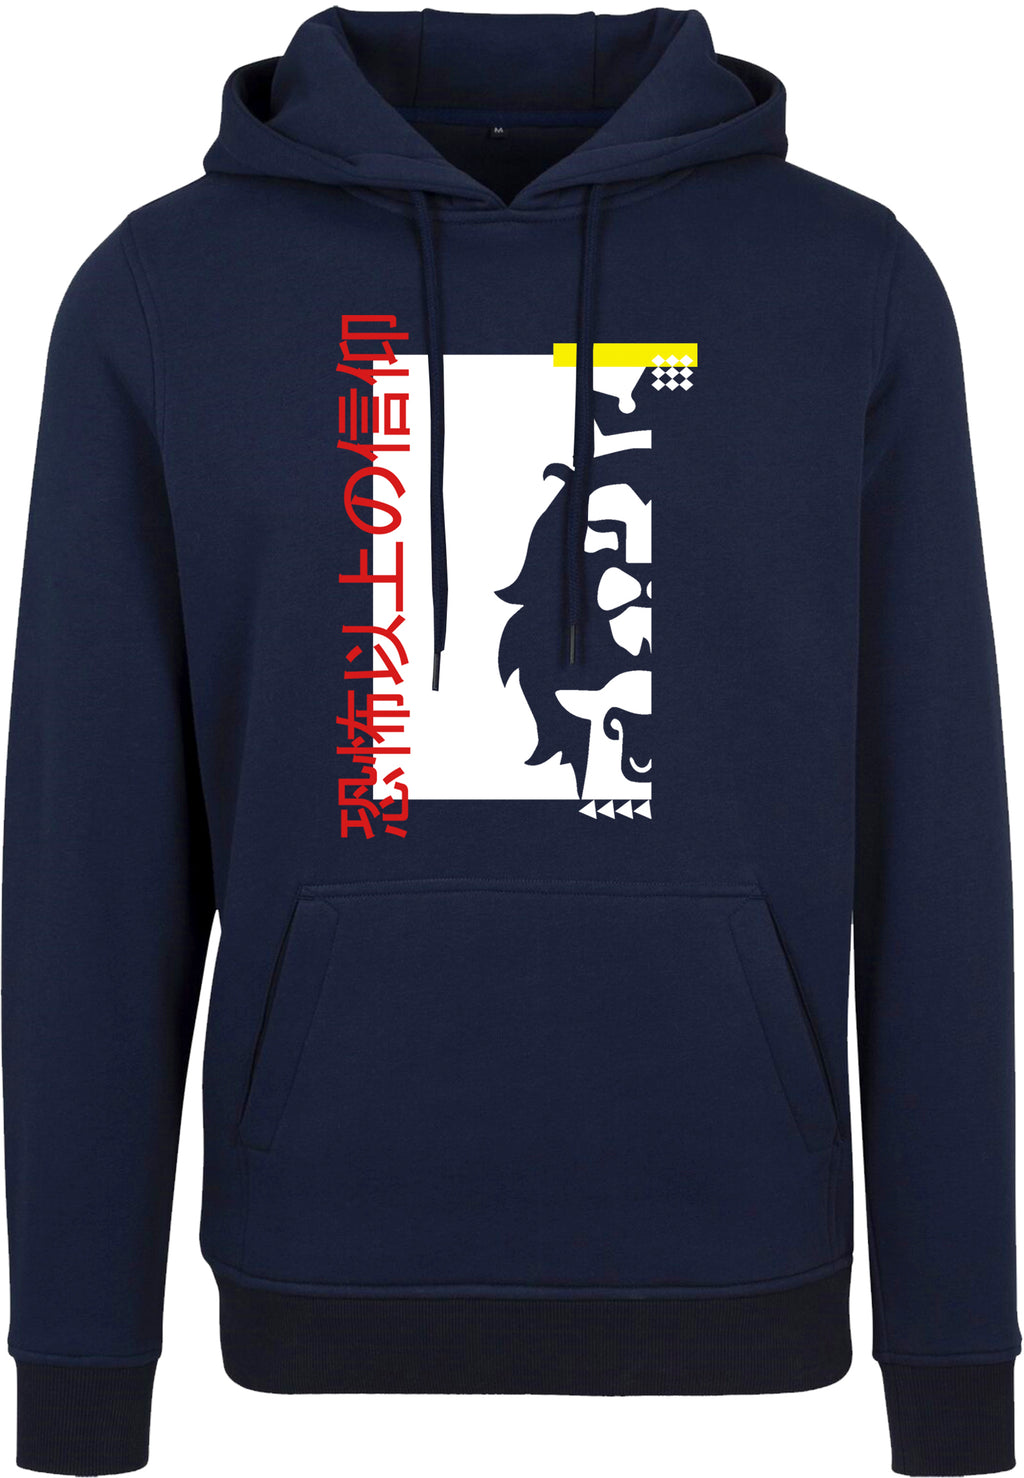 Unisex FAITH OVER FEAR Japanese Print Hoodie (Navy)